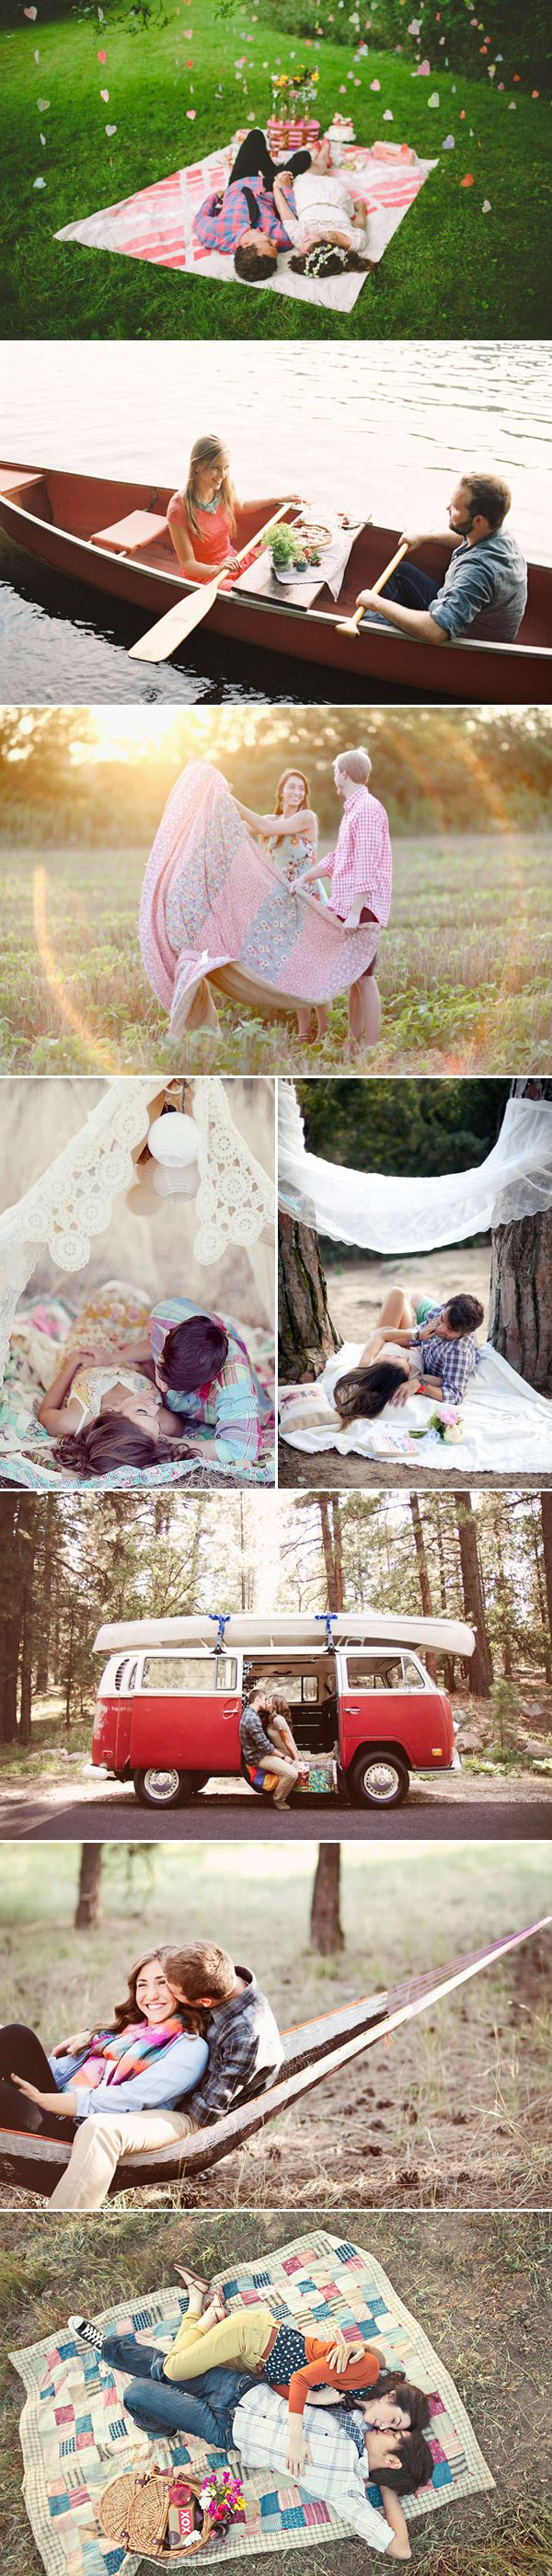 With summer fast approaching, many of you lovelies are probably getting ready for some outdoors engagement shoots. We figured it's about time to share some summery engagement photo ideas. Remember that your engagement photos should tell your love story, show your unique style as a couple, and include some of your favorite activities and places. …